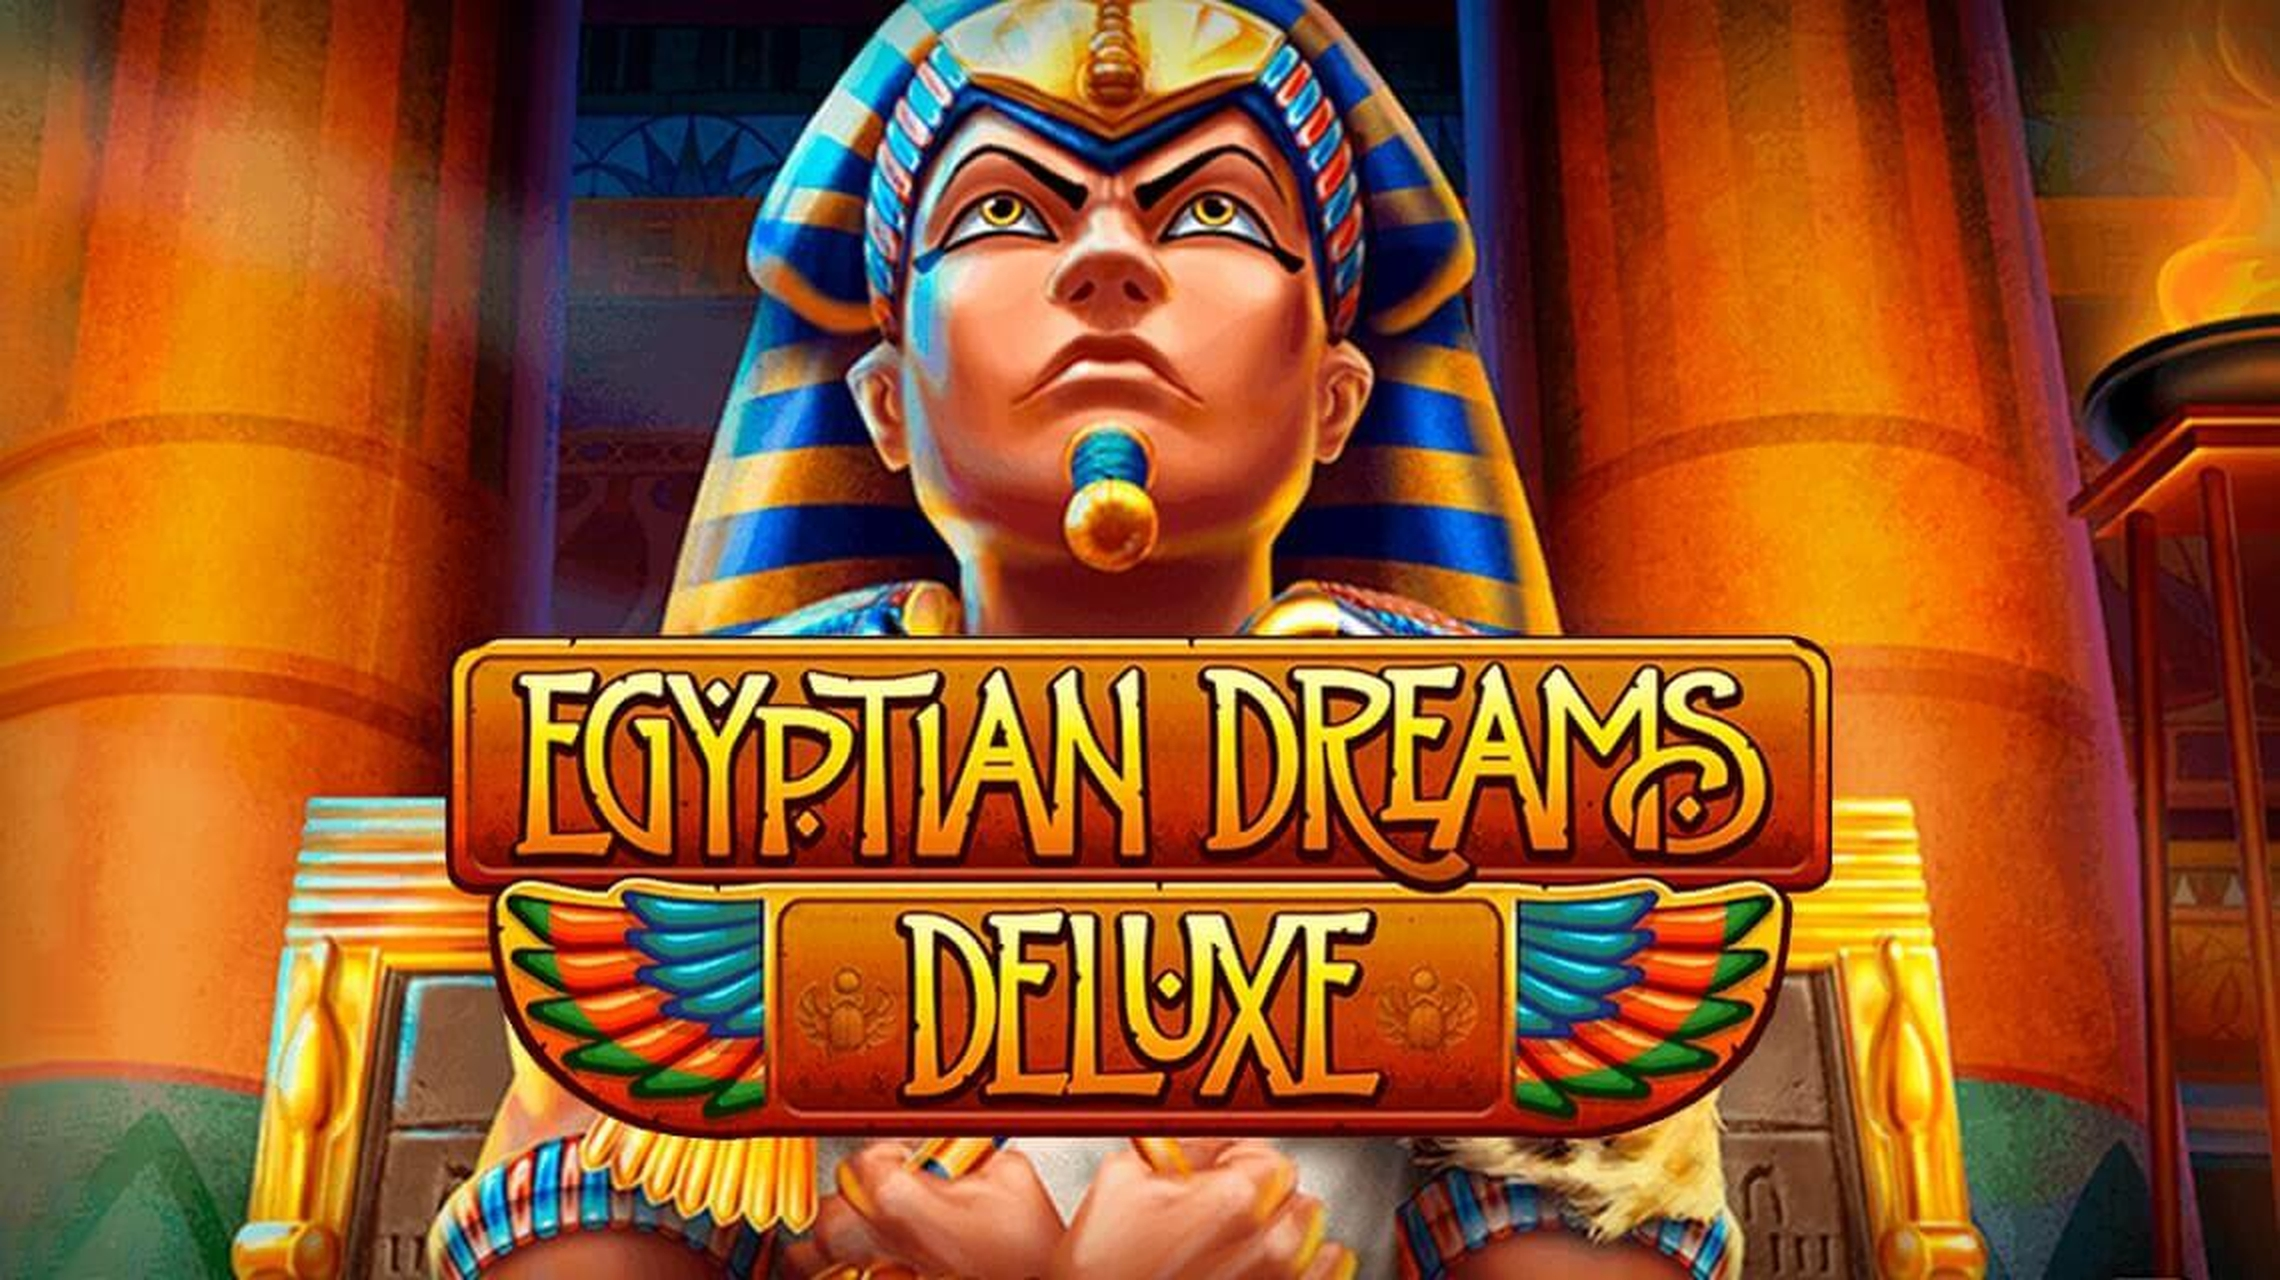 Egyptian Dreams Deluxe Online Slot Demo Game by Habanero